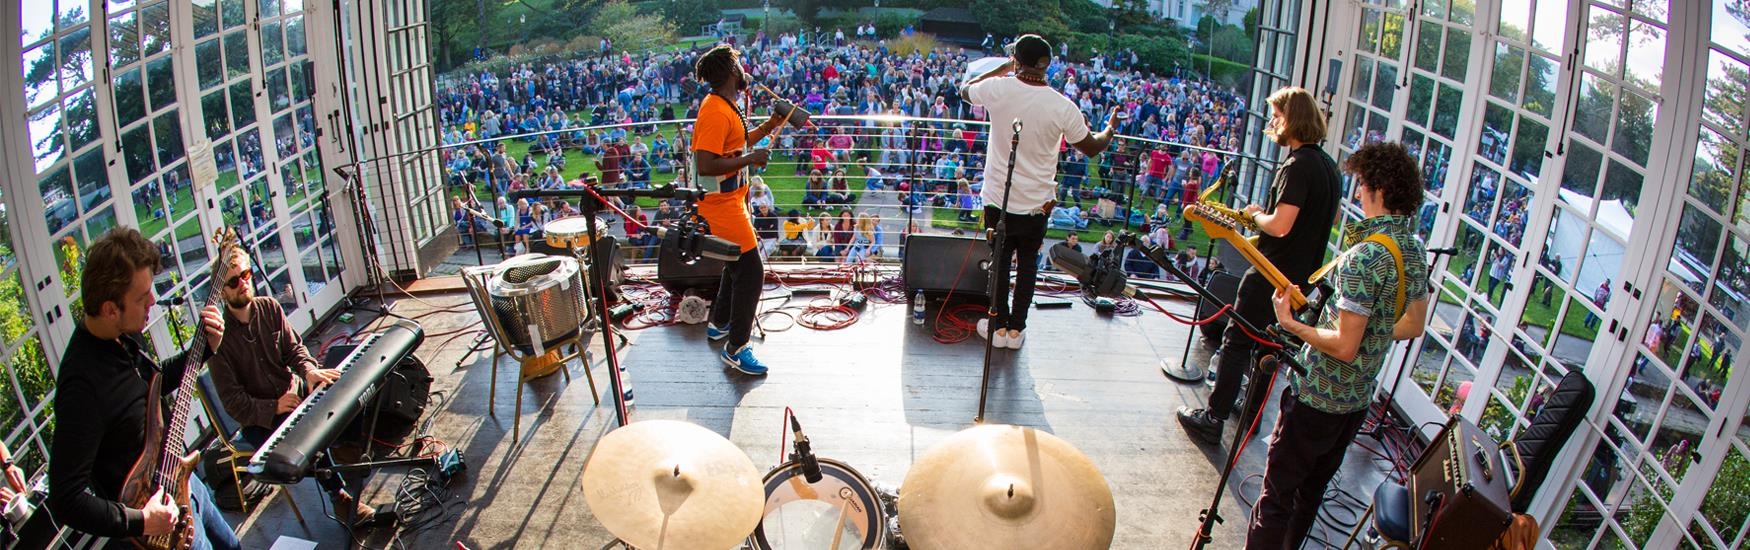 Great music events in and around Bournemouth all year round